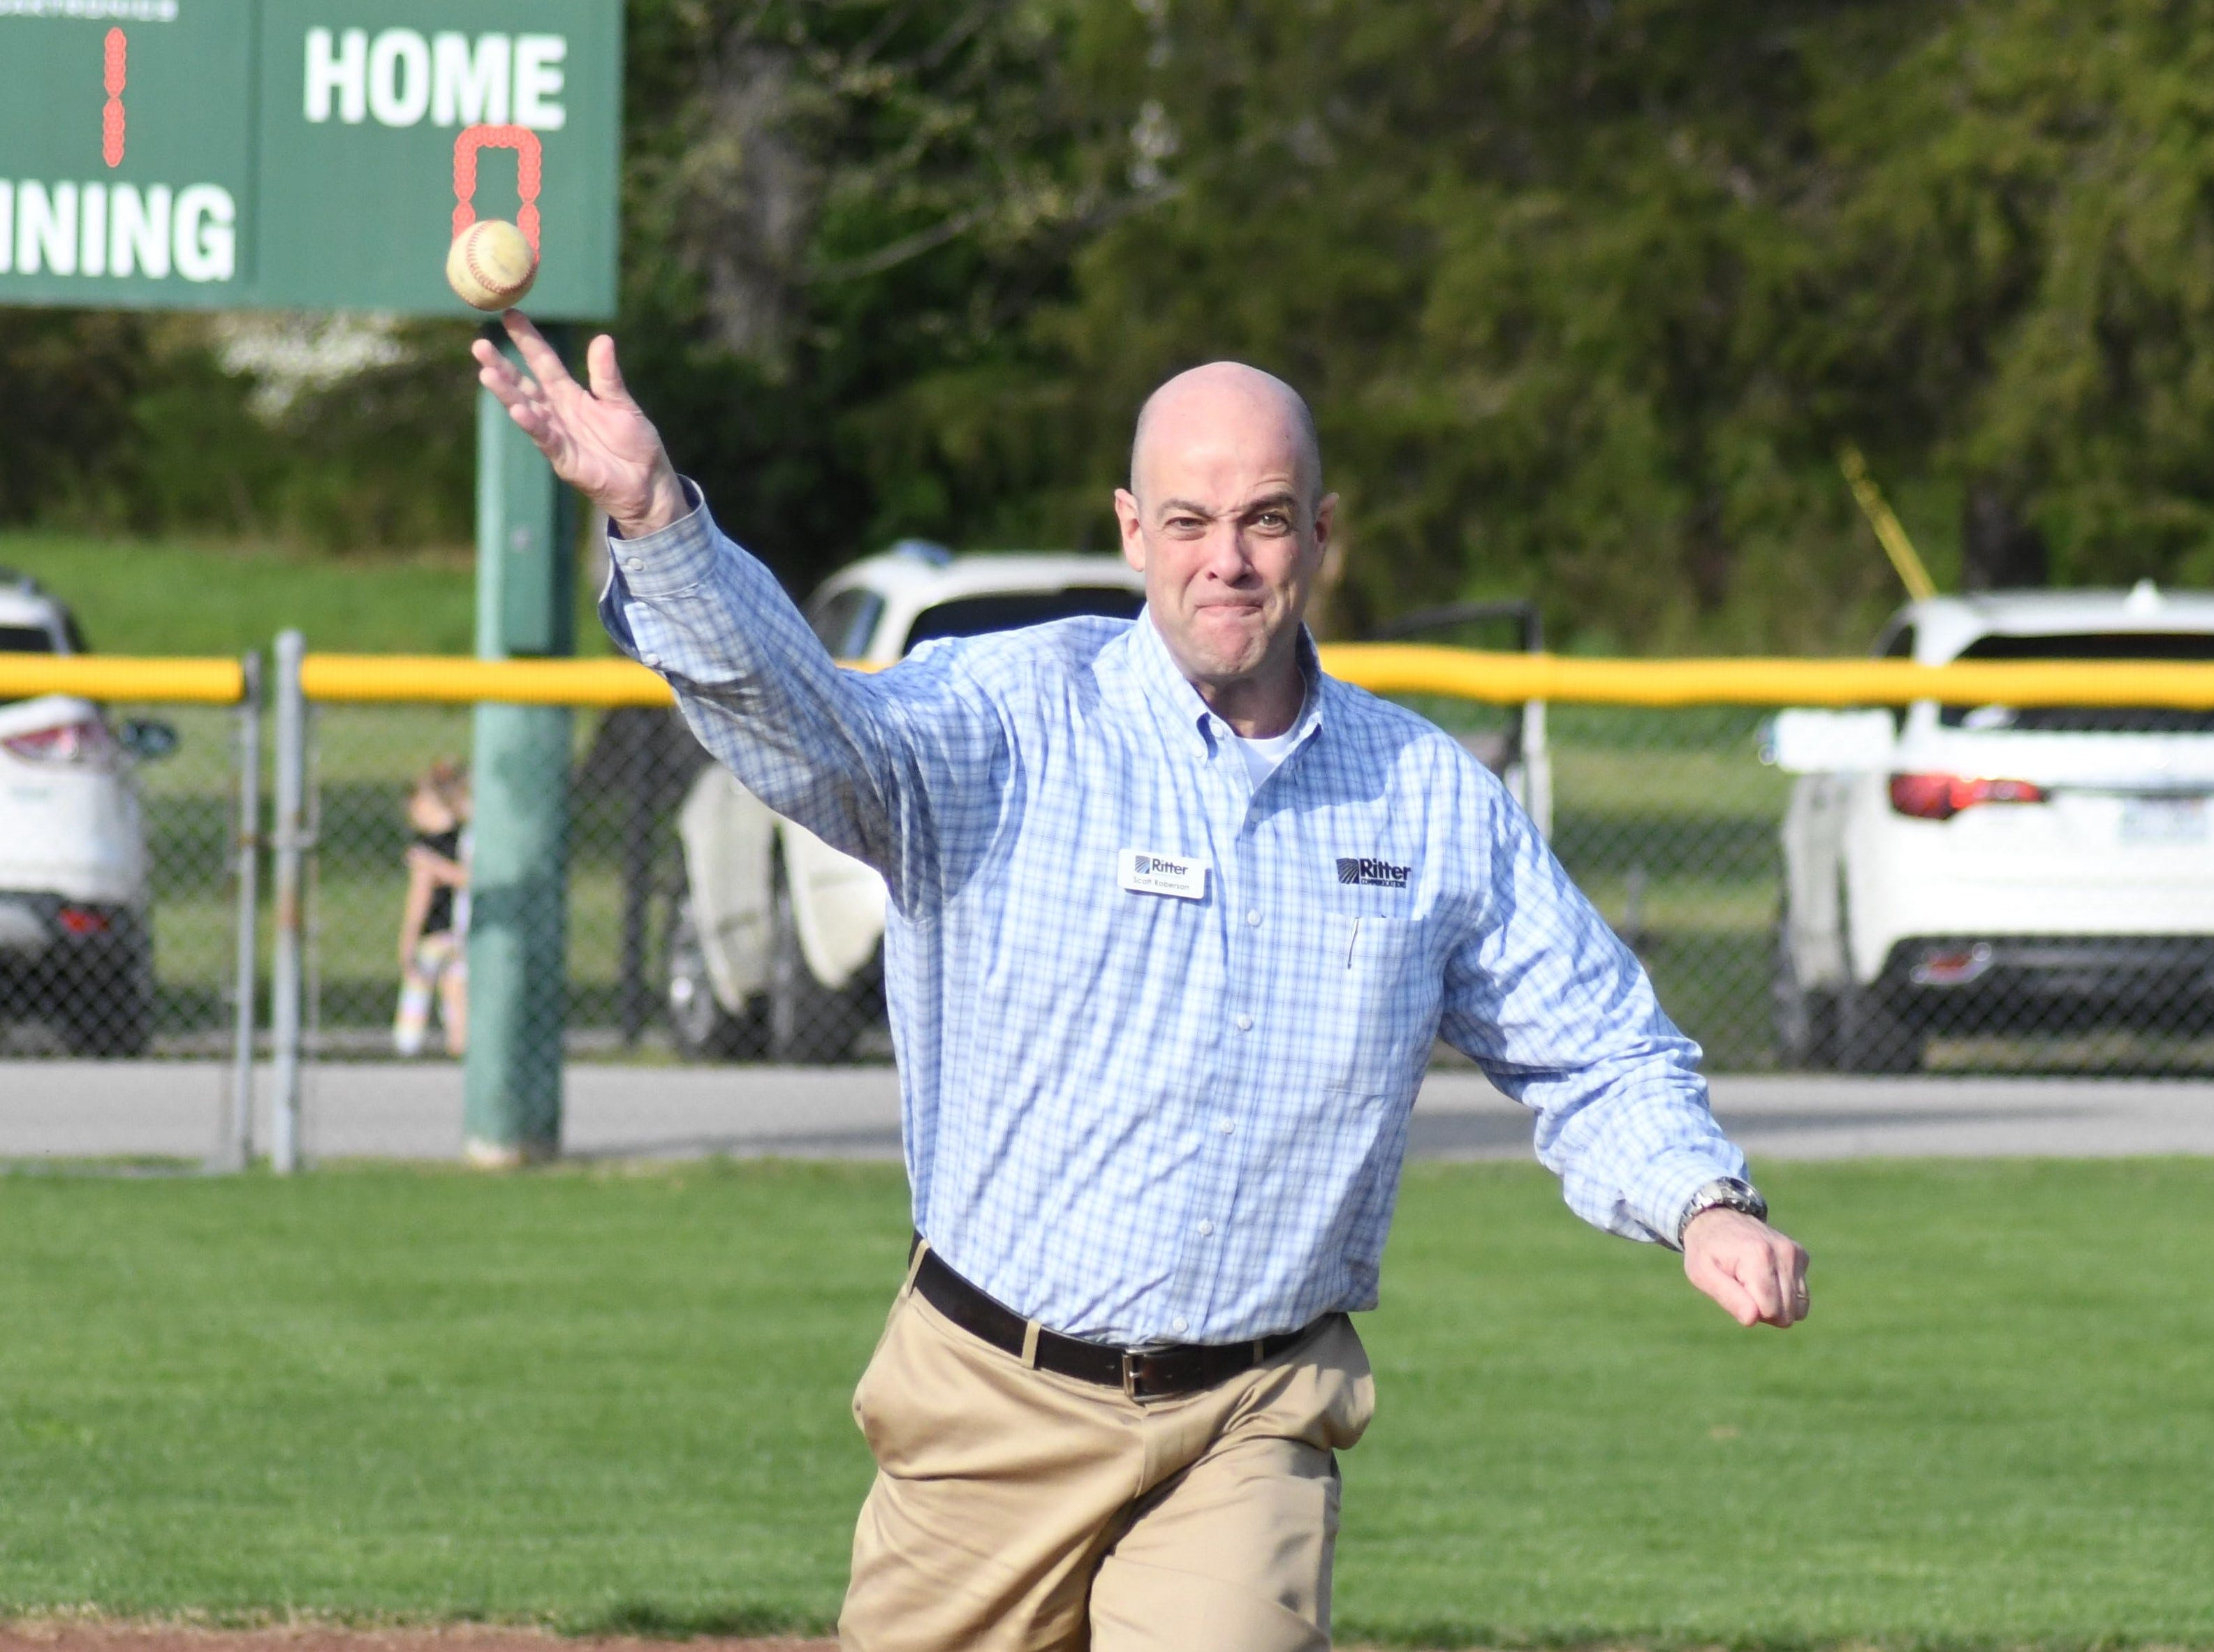 Scott Robertson, business sales representative for Ritter Communication, throws out the ceremonial first pitch at Ritter Communication Field on Tuesday evening.